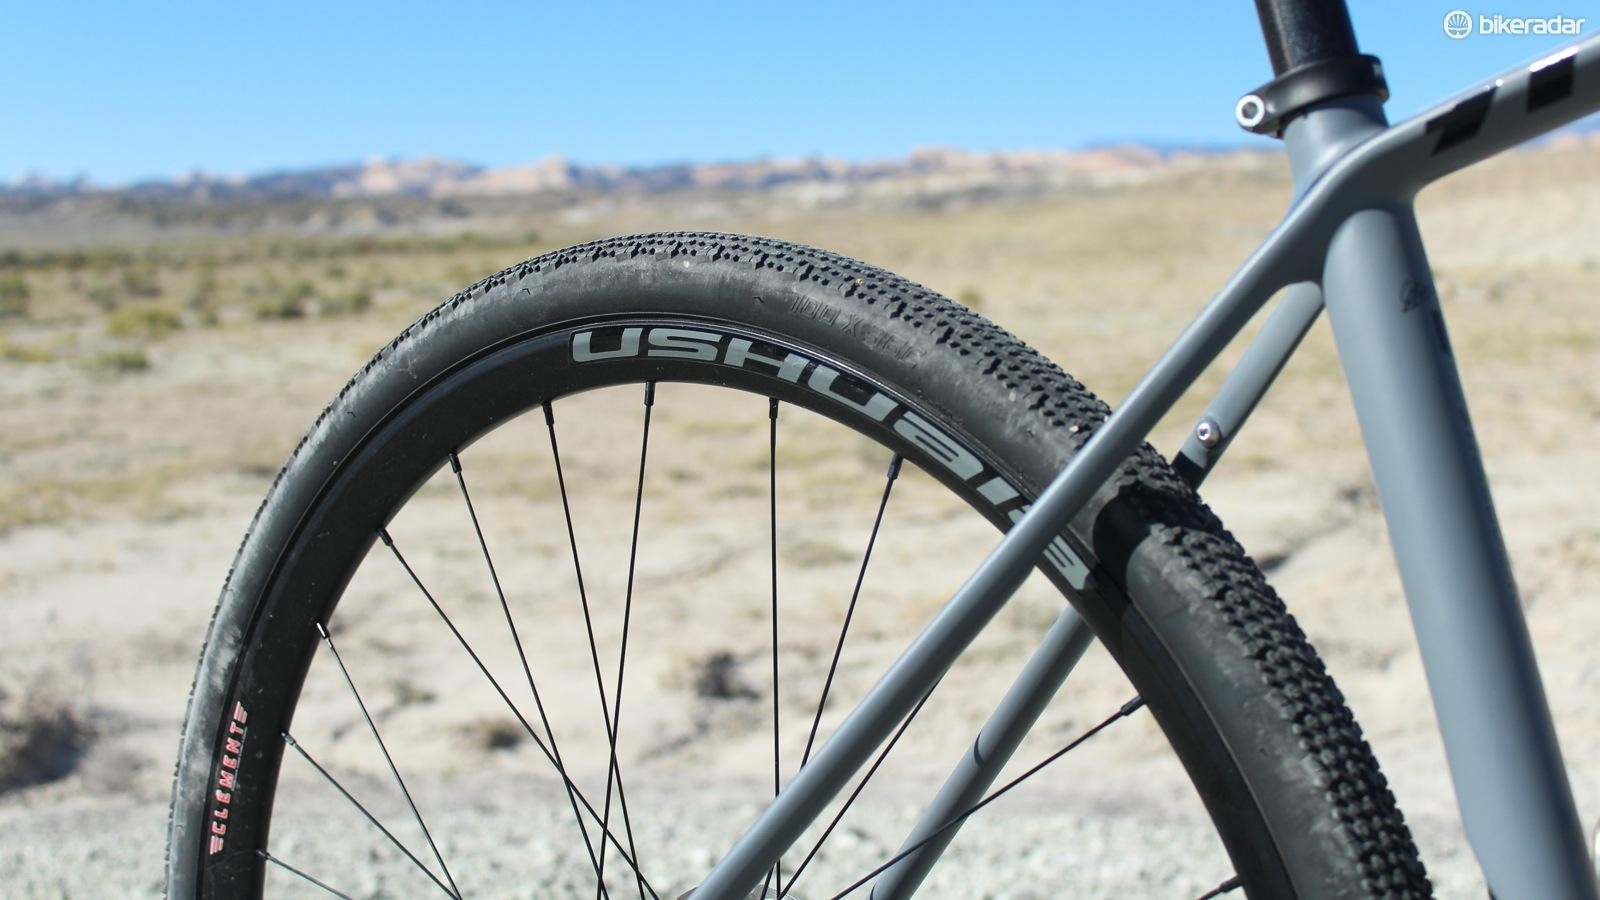 The Ushuaia is 23mm wide internally, which allows for a good profile on tires like this 36mm X'Plor MSO